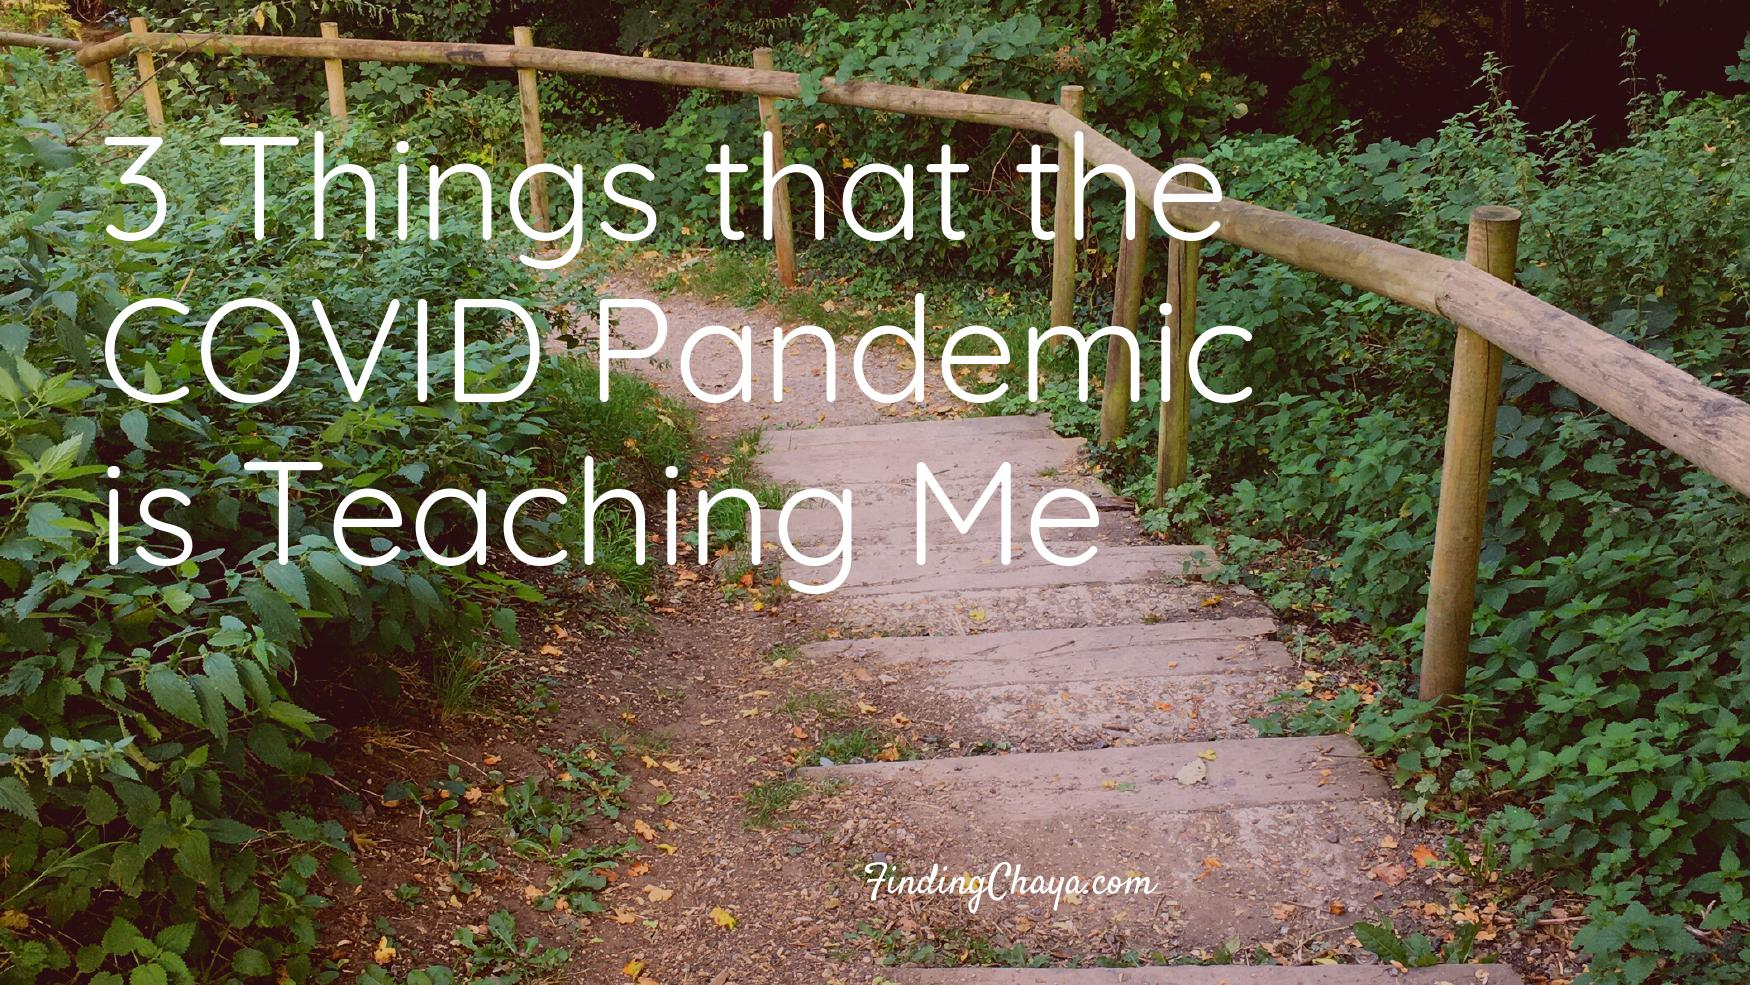 3 Things that the COVID Pandemic is Teaching Me